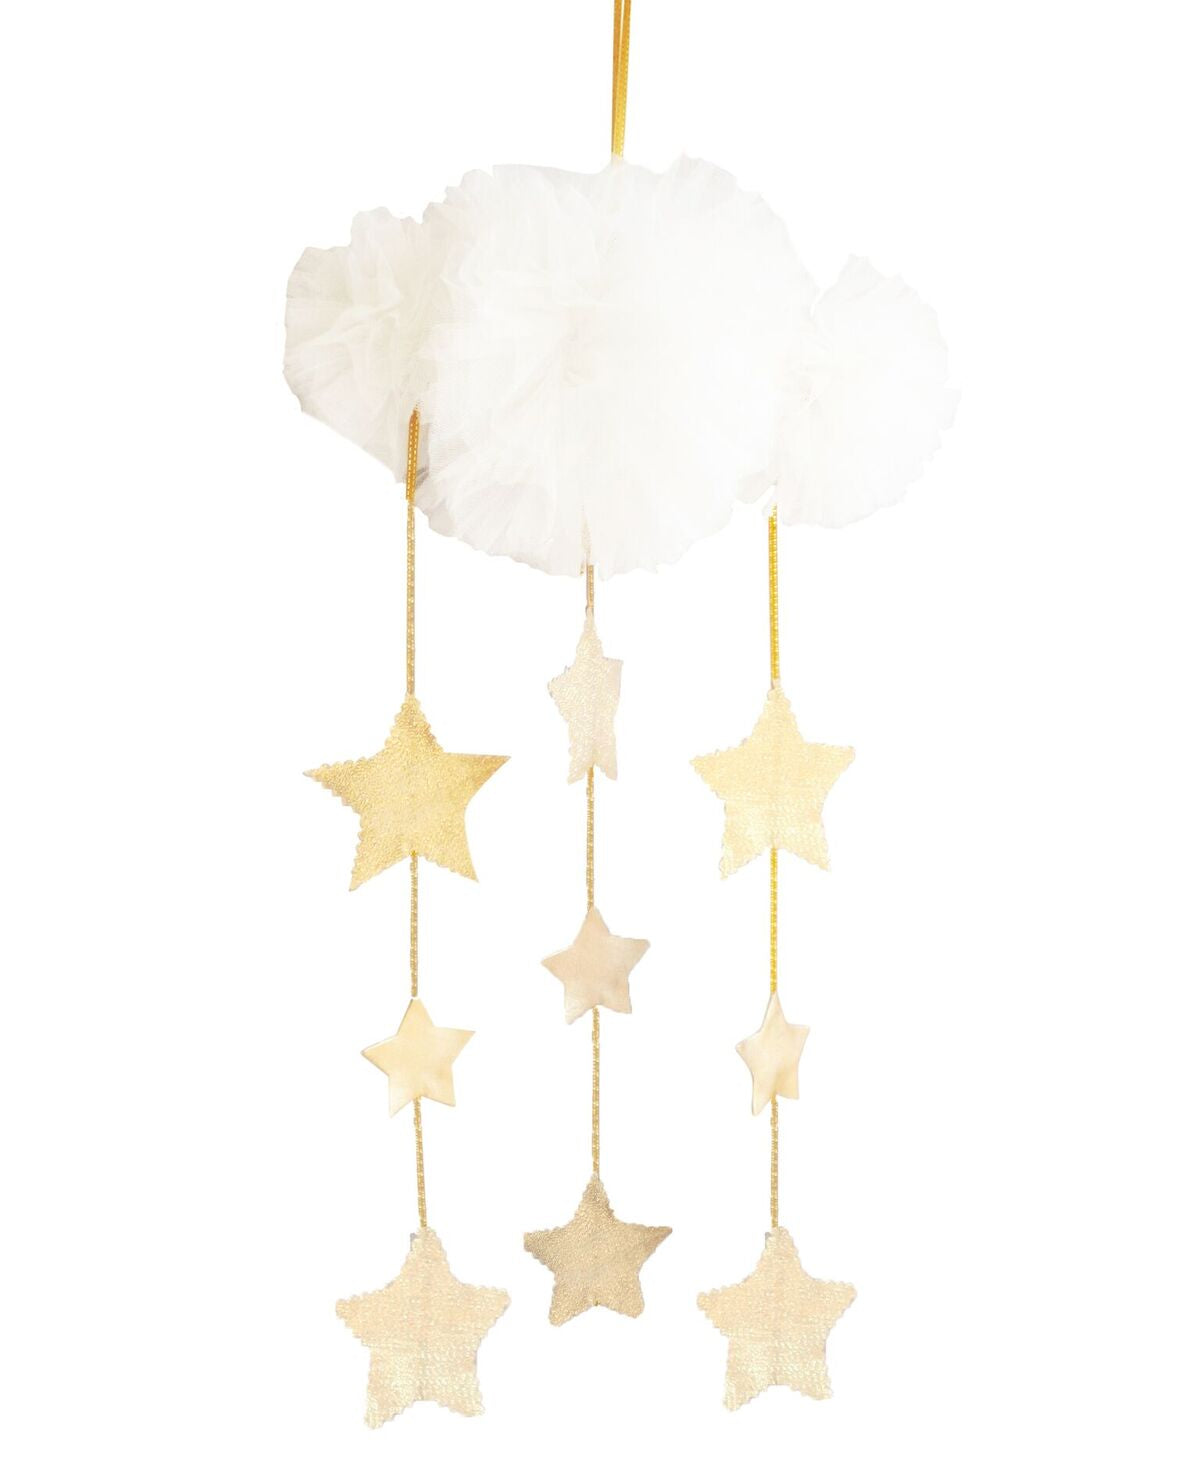 Alimrose Tulle Cloud Mobile - Ivory & Gold